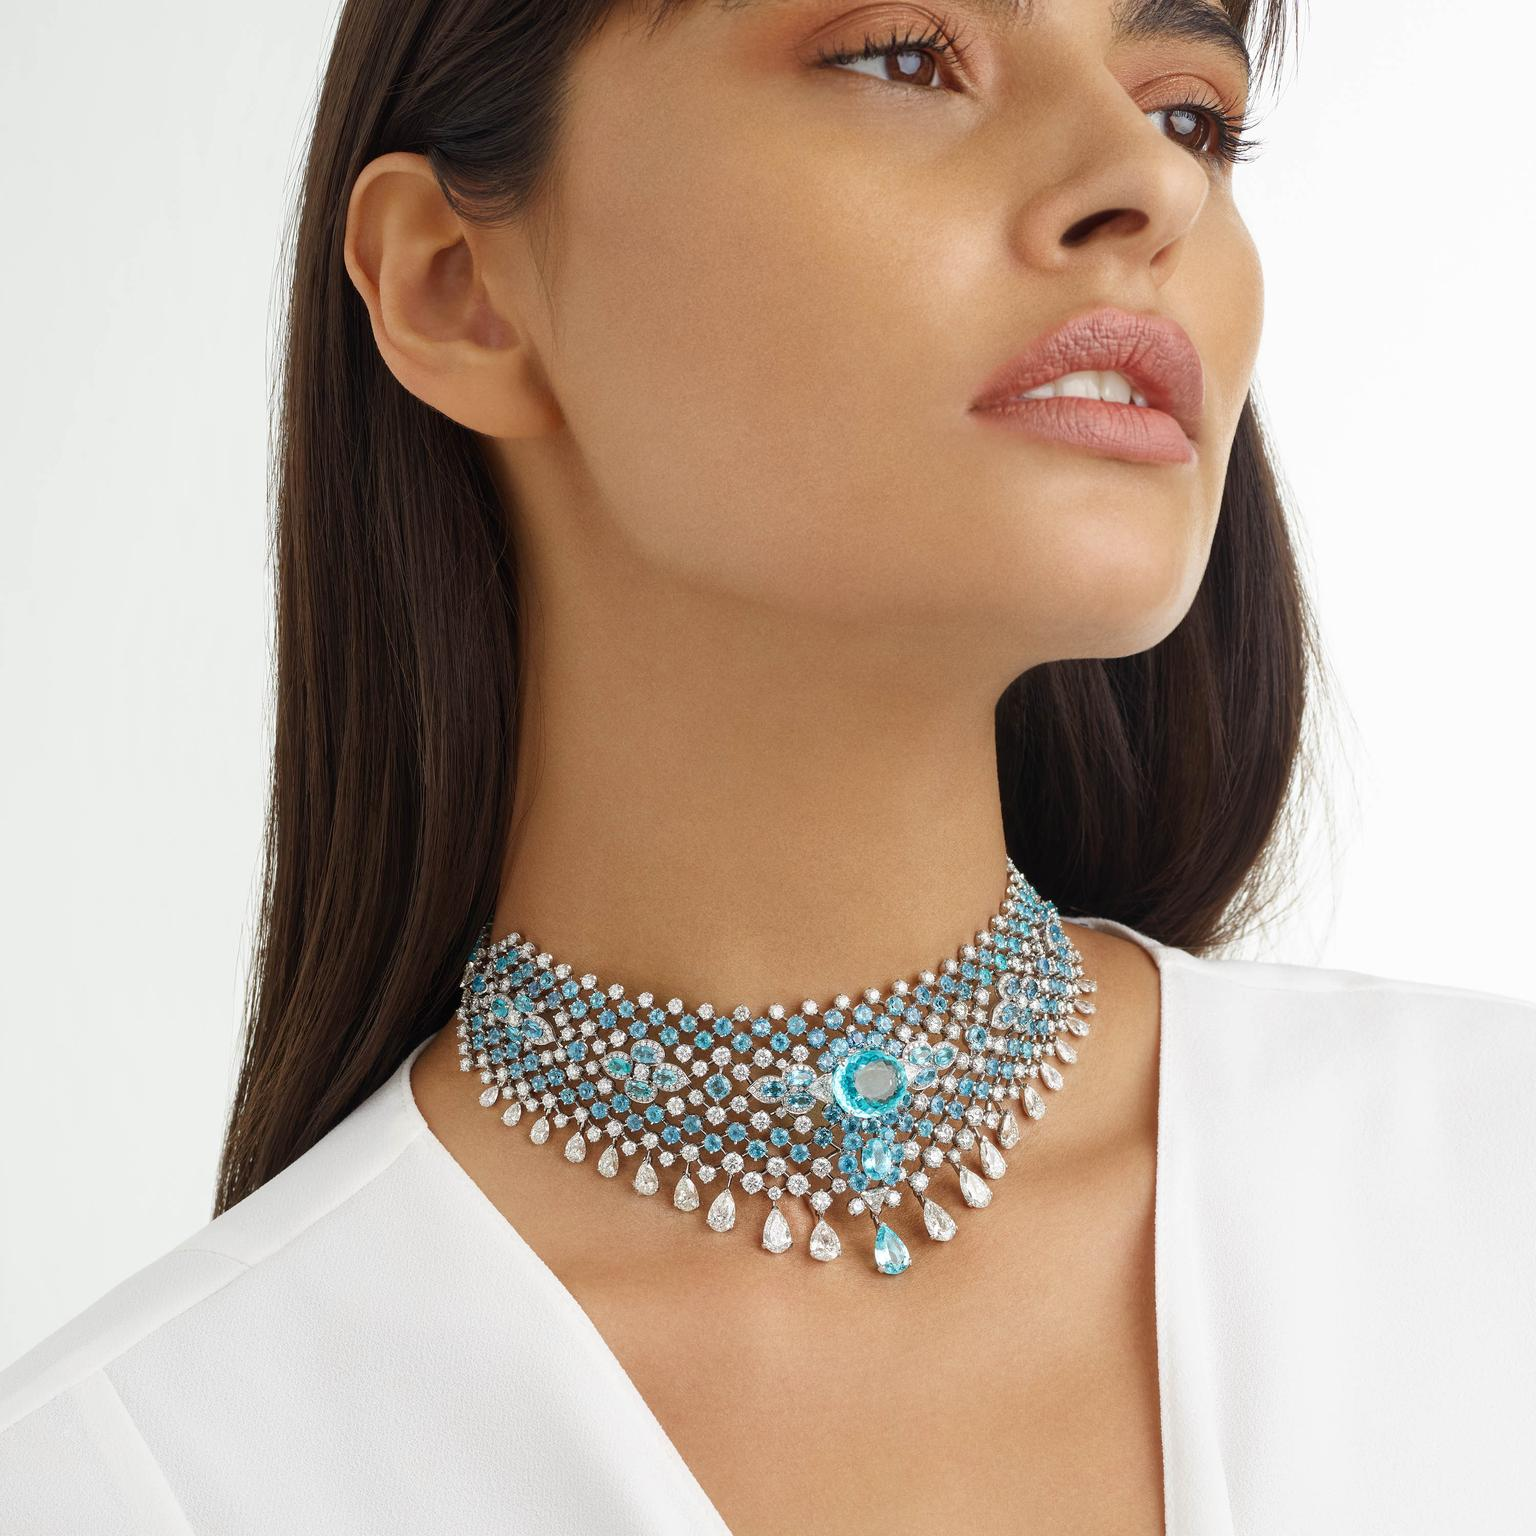 Azul choker by David Morris on model